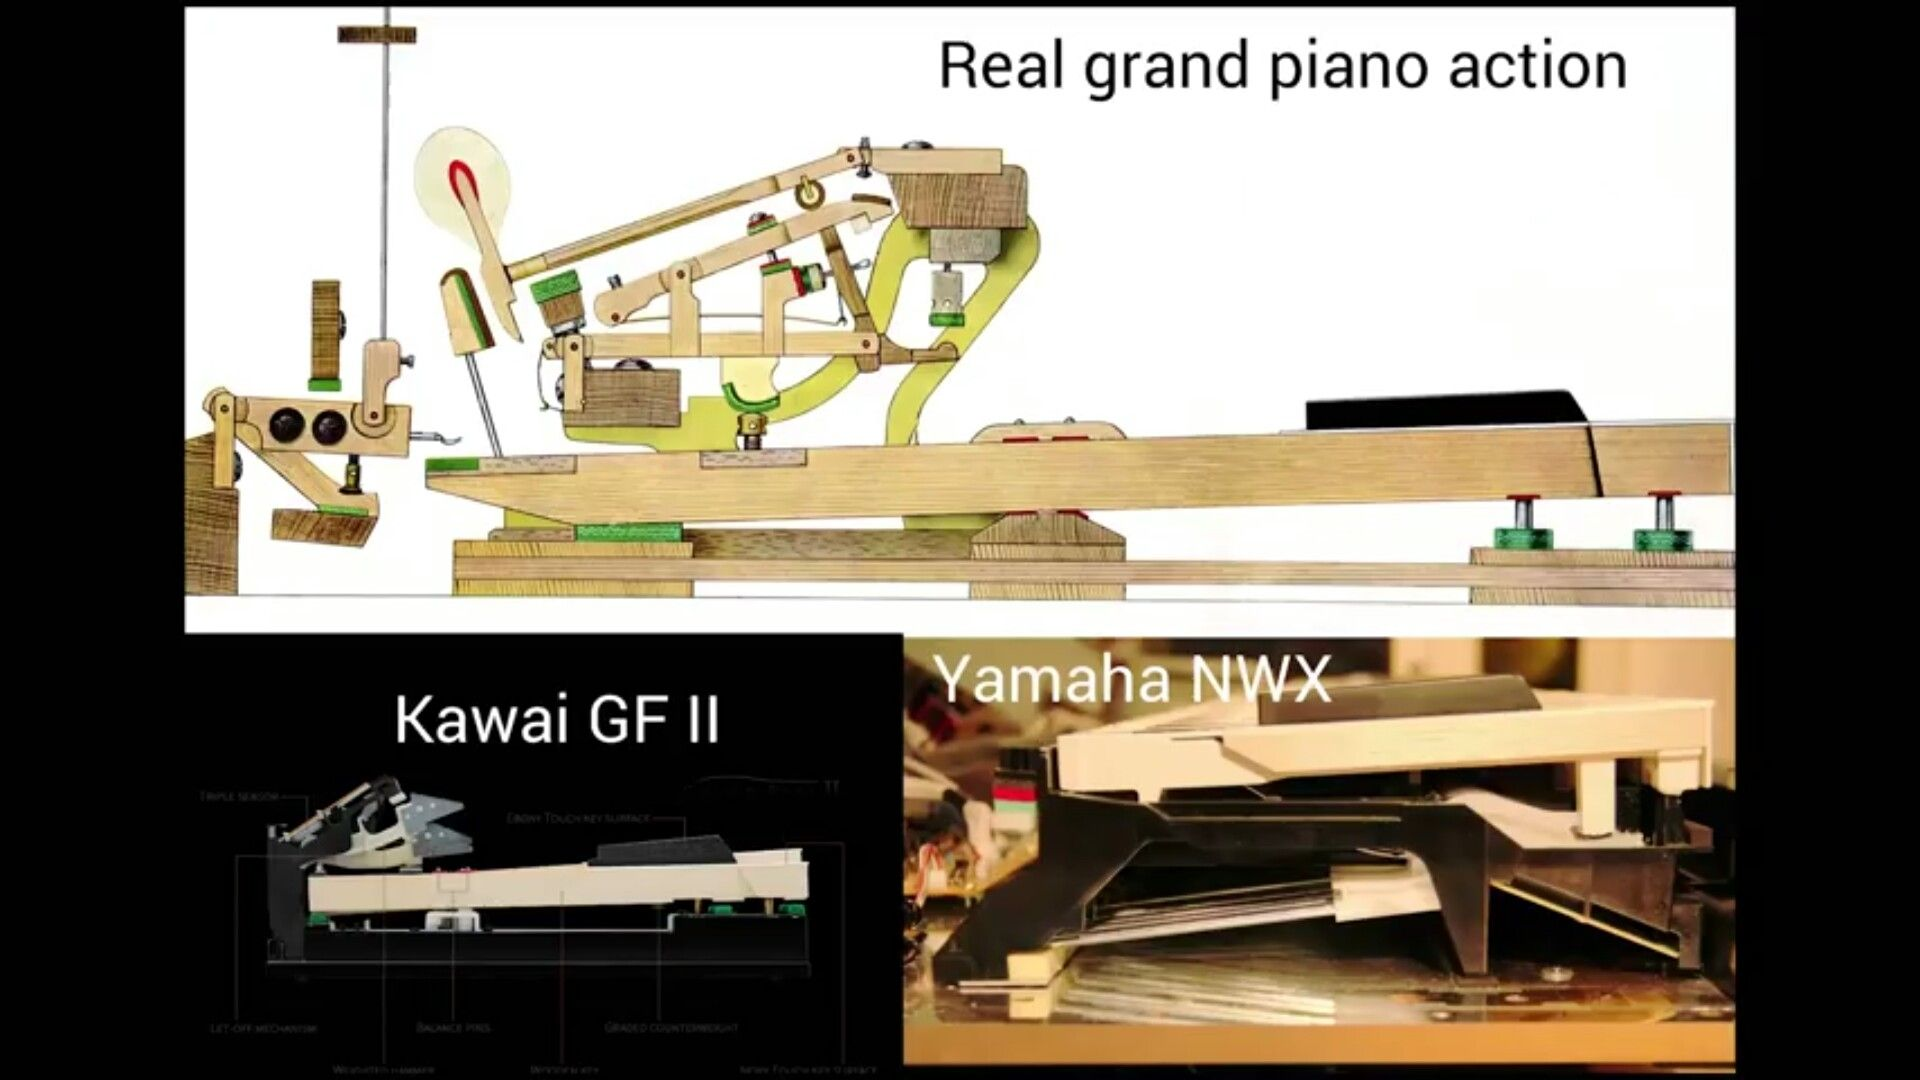 naked pics of grandtouch action piano world piano. Black Bedroom Furniture Sets. Home Design Ideas